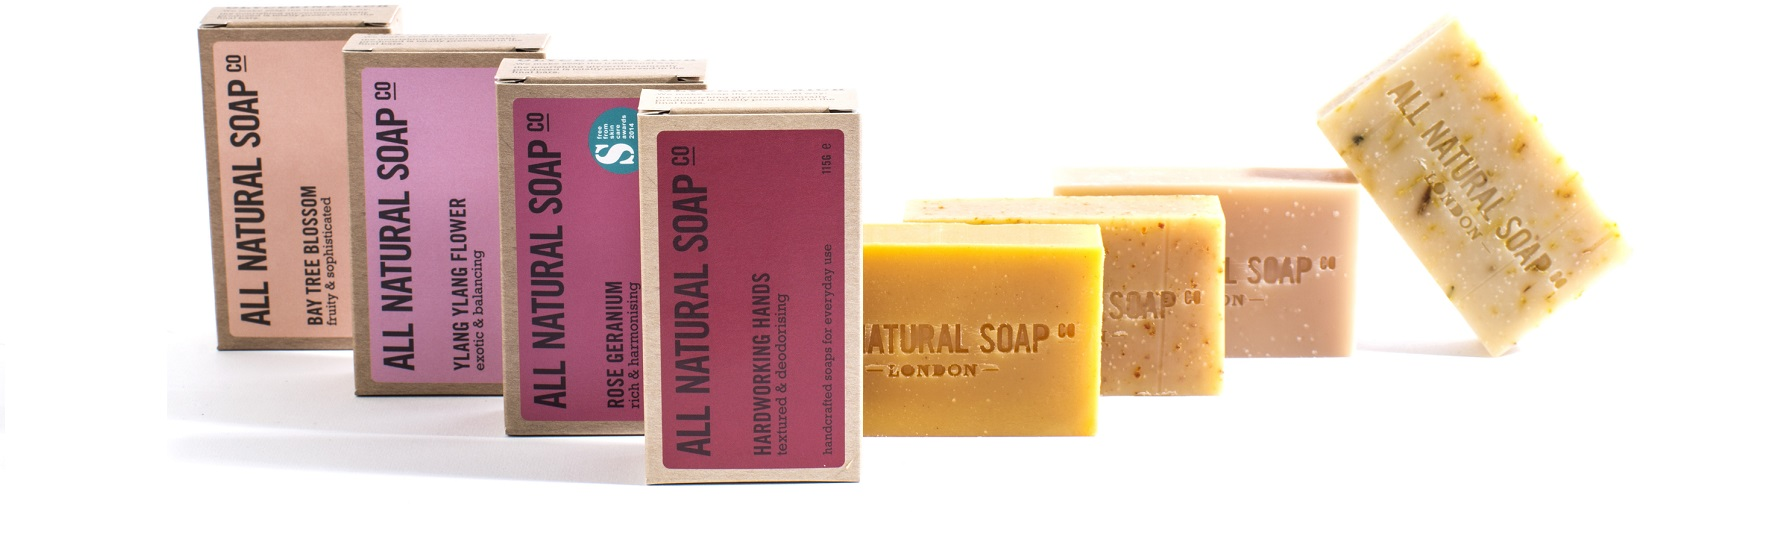 Special-soap-for-everyday